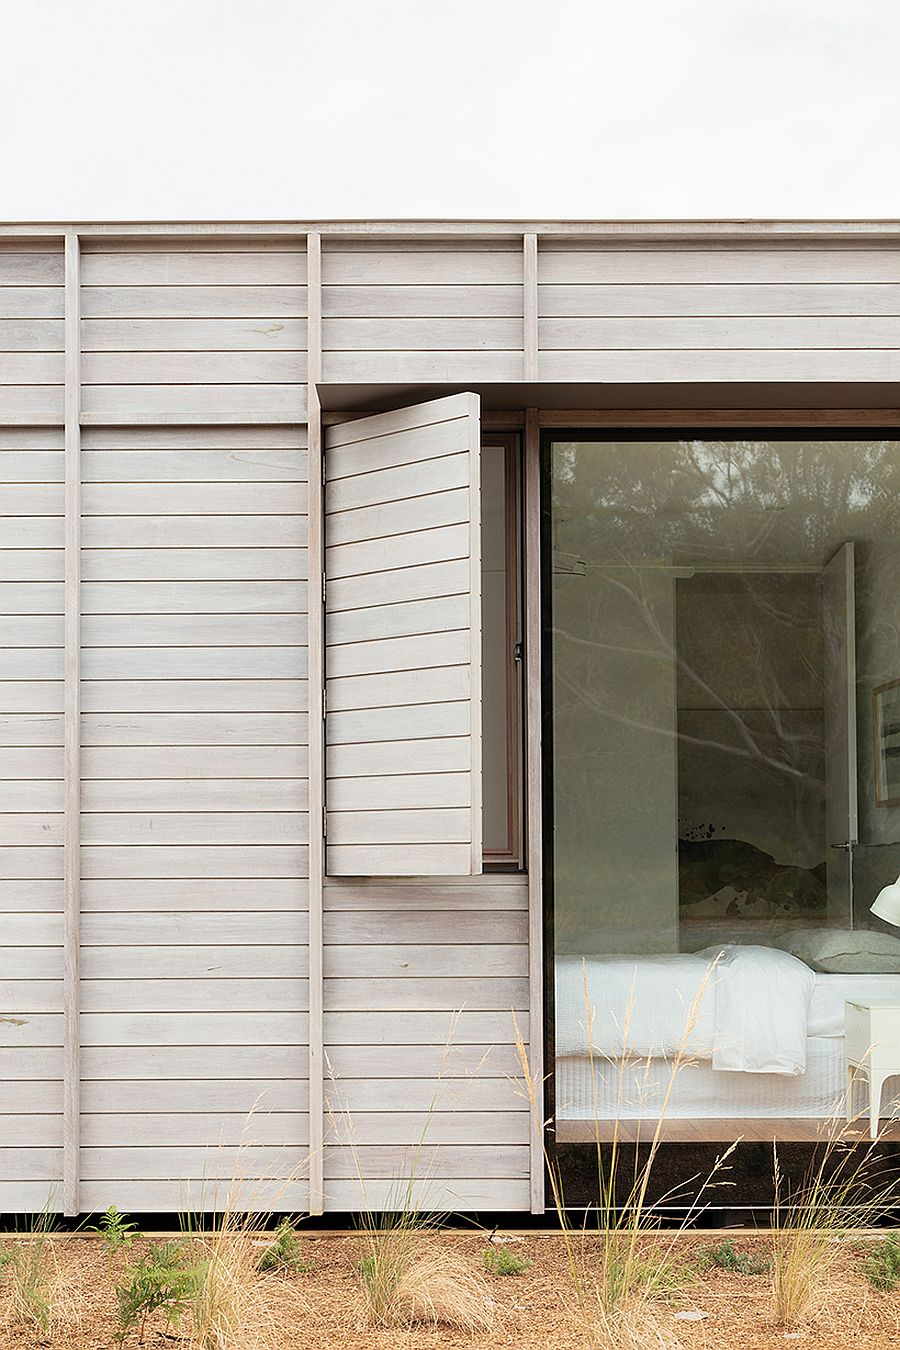 Sliding-screens-and-windows-open-up-to-connect-the-interior-with-the-landscape-outside-57330